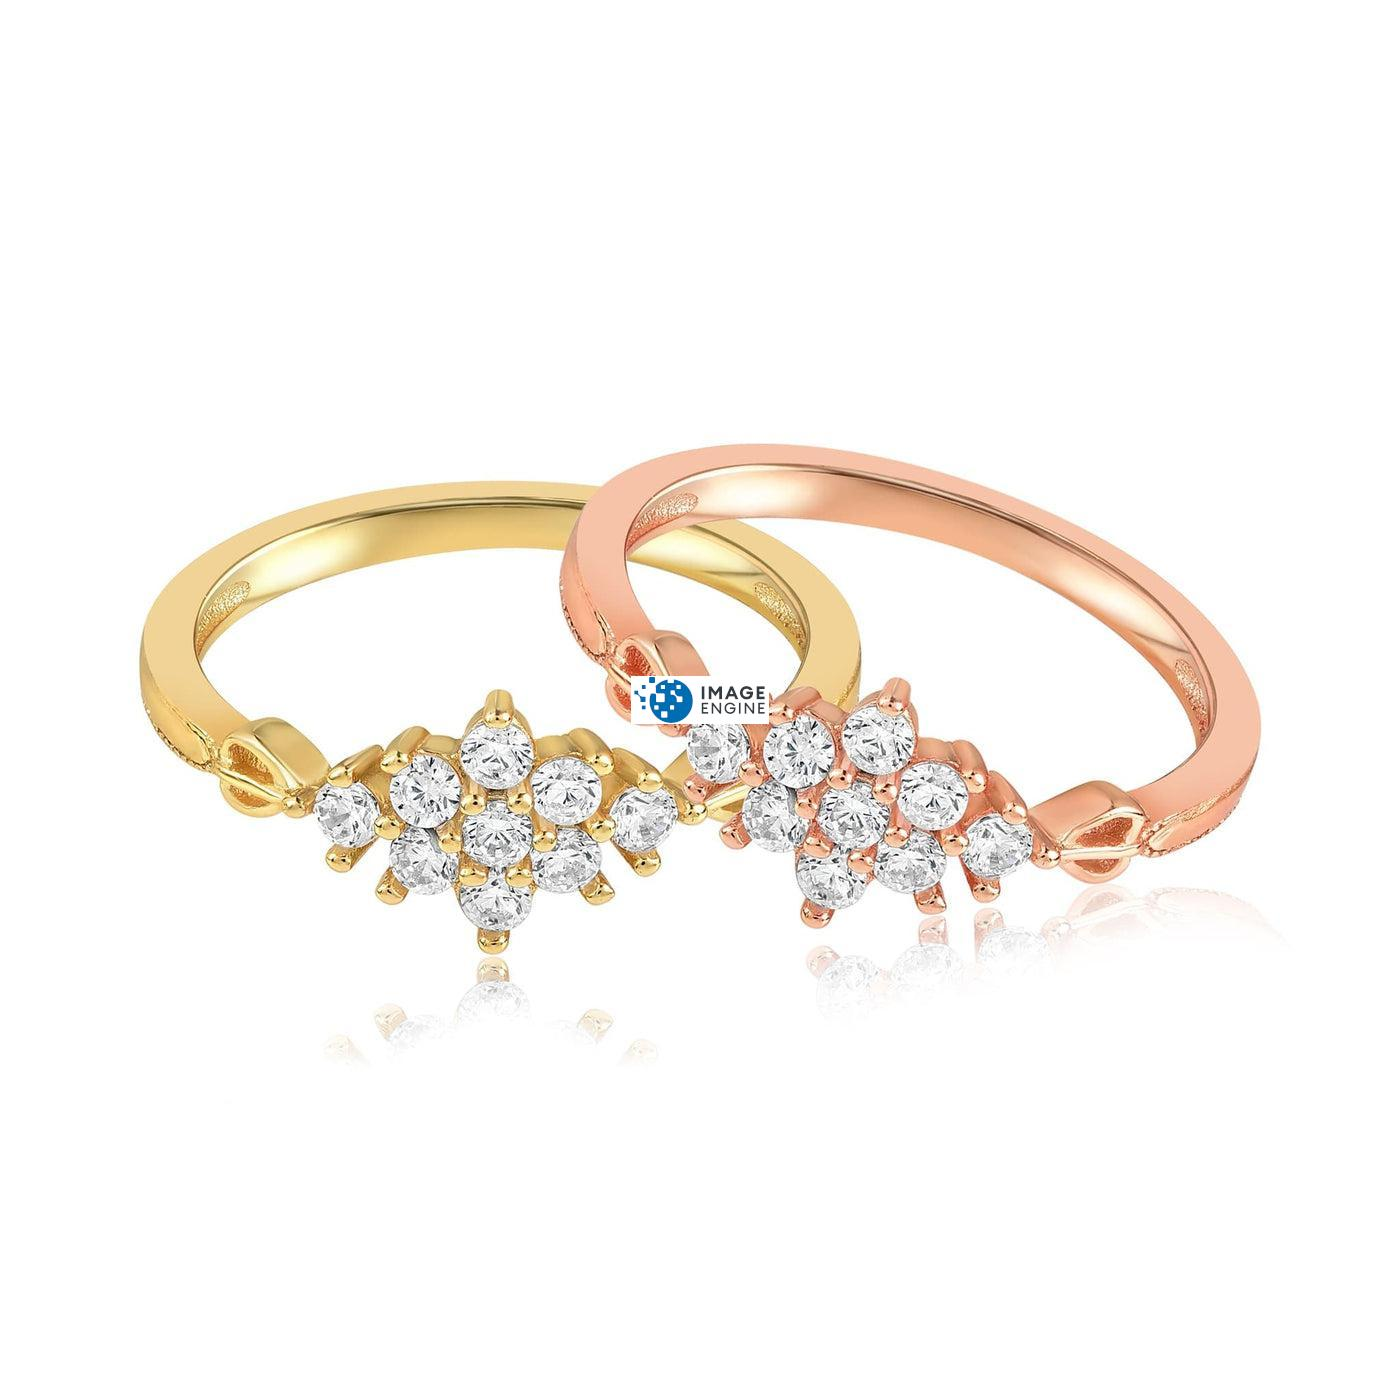 Sarah Snowflake Dainty Ring - Front View Side by Side - 18K Rose Gold Vermeil and 18K Yellow Gold Vermeil